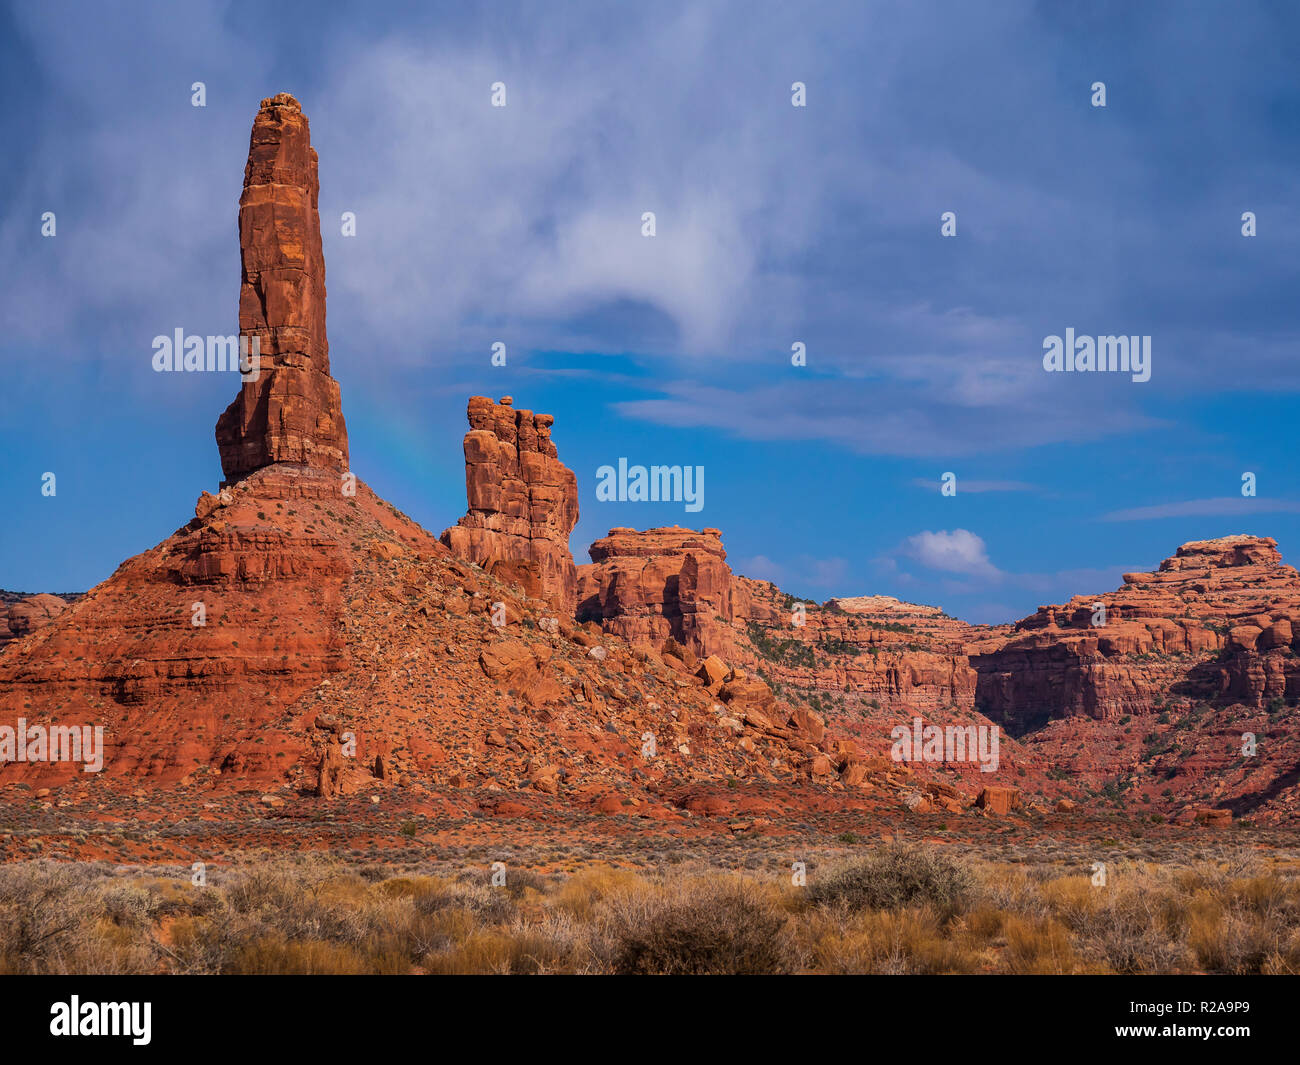 Pillar formation, Valley of the Gods near Bluff, Utah. - Stock Image